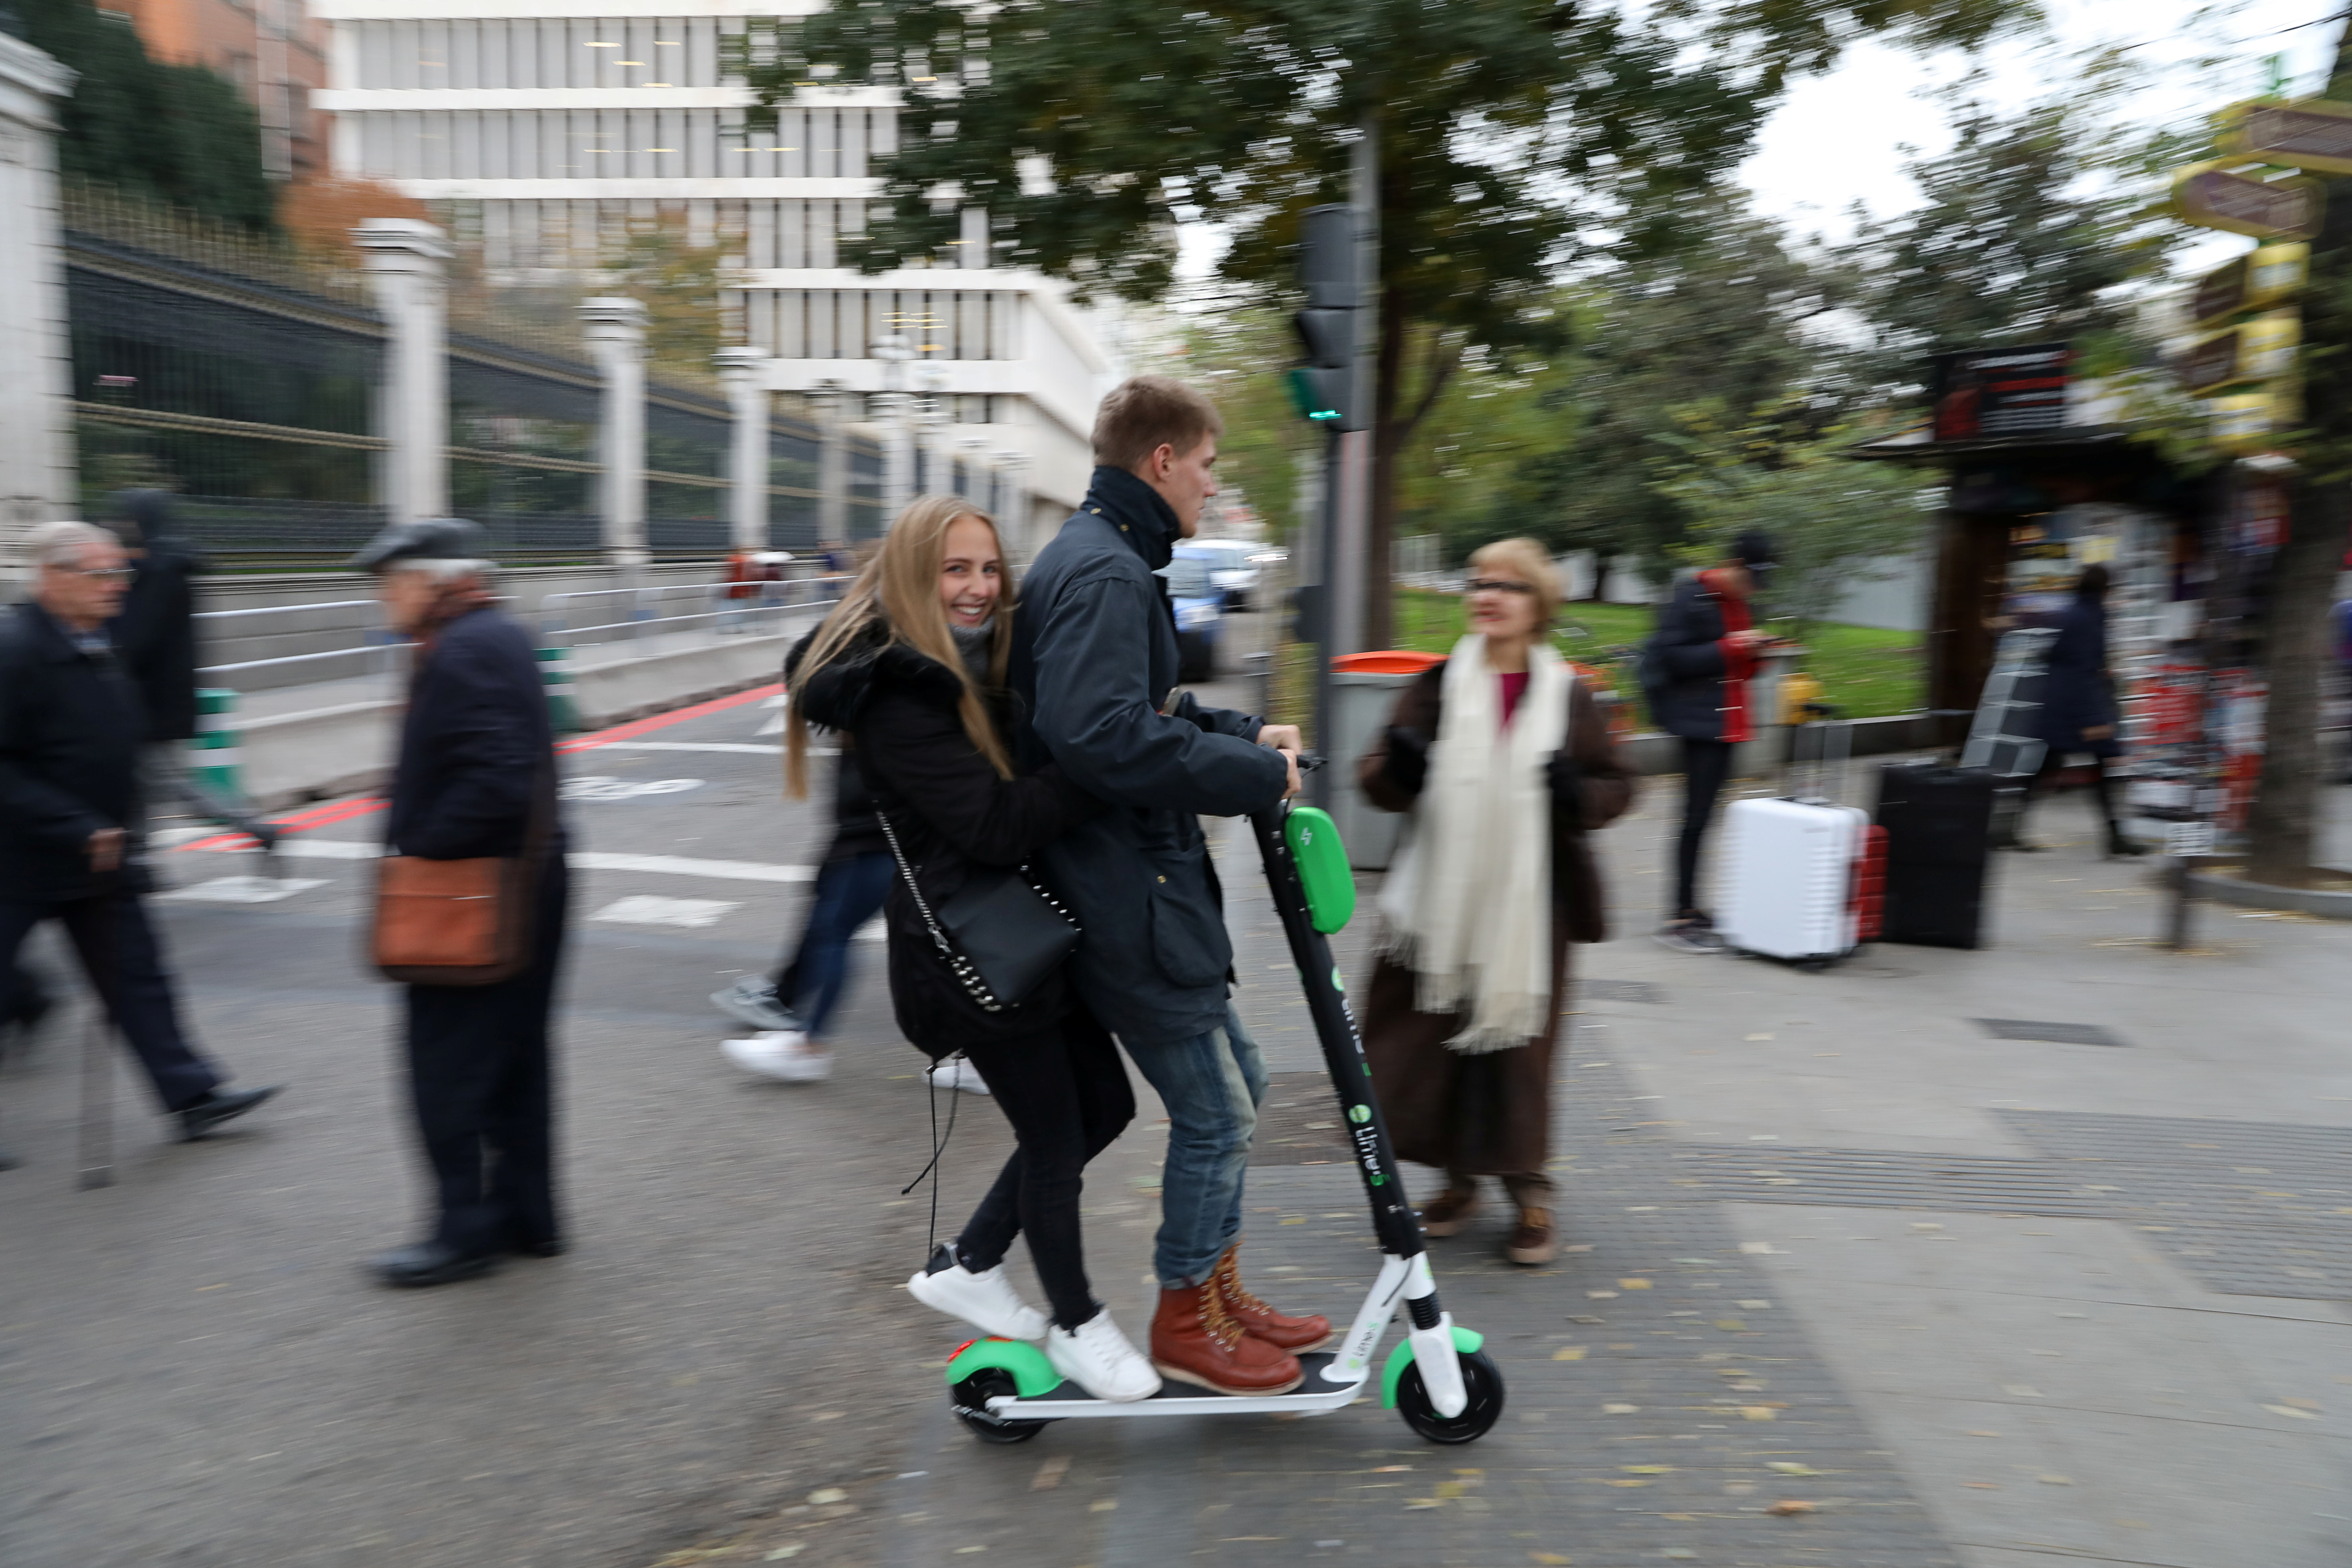 A man and a woman ride a Lime-S, dock-free electric scooter, in Madrid, Spain, November 29, 2018. REUTERS/Susana Vera